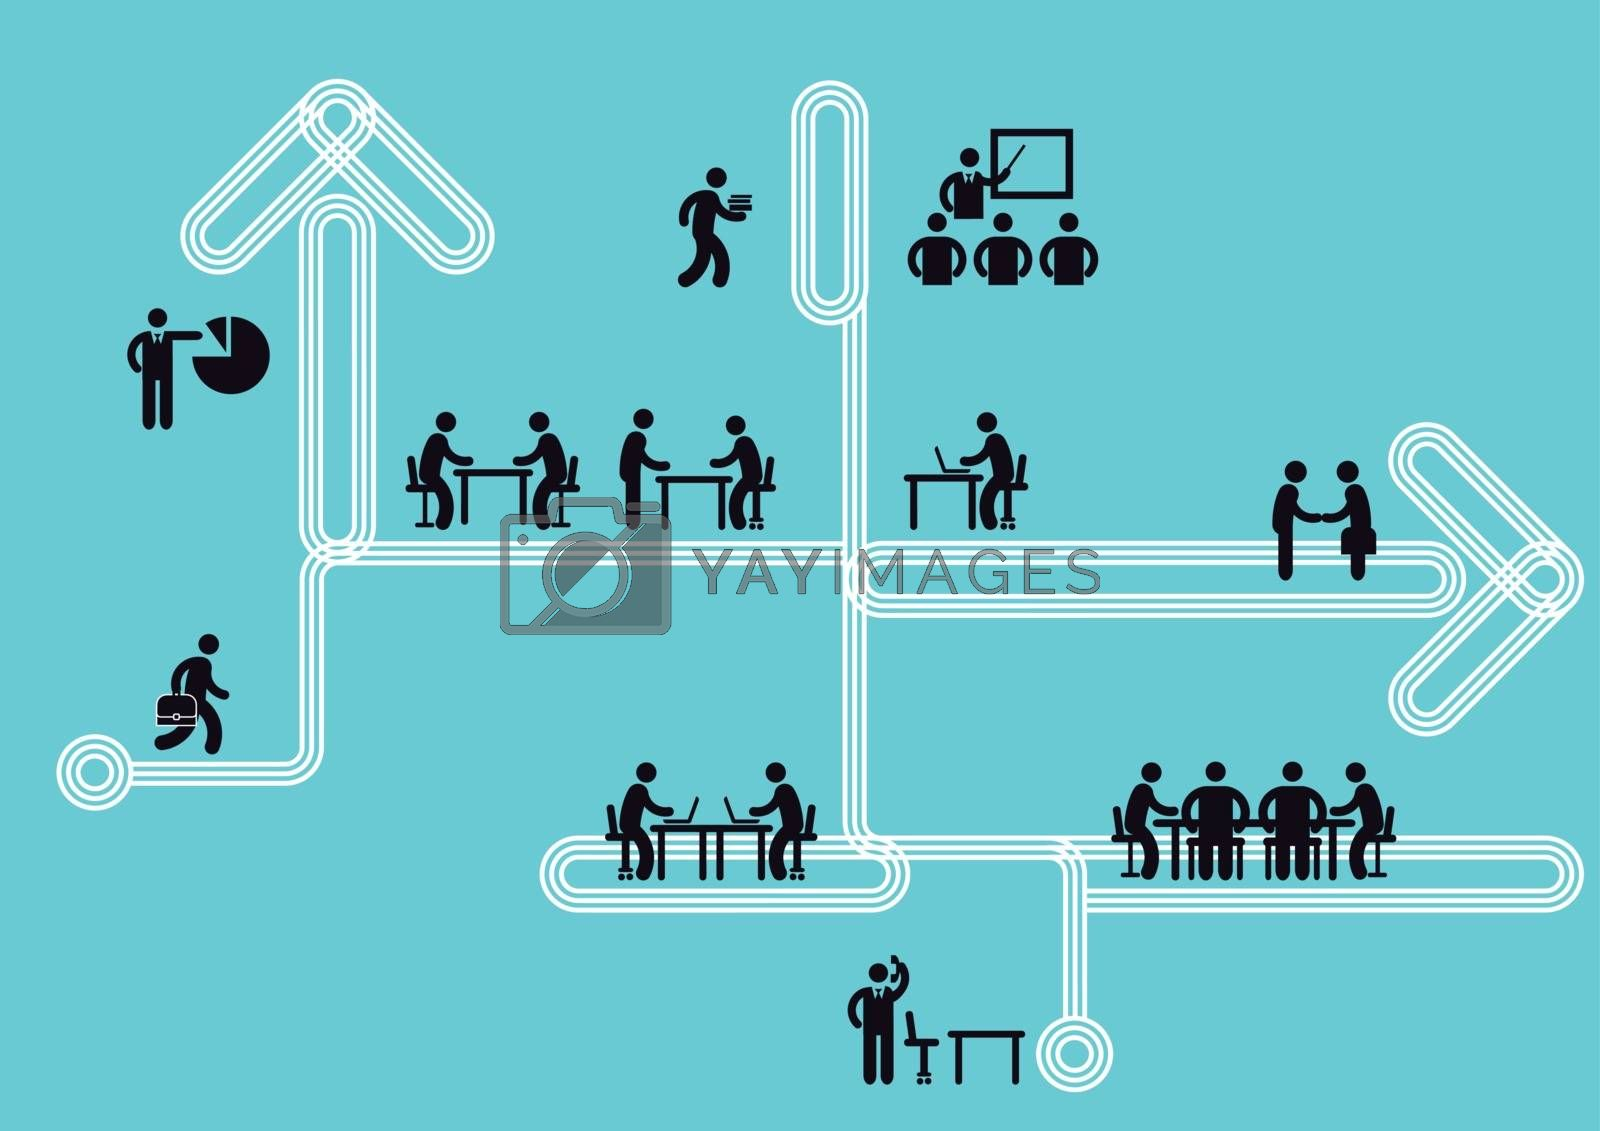 Royalty free image of Business Icon Information, Teamwork Concept, Vector Illustration by scusi